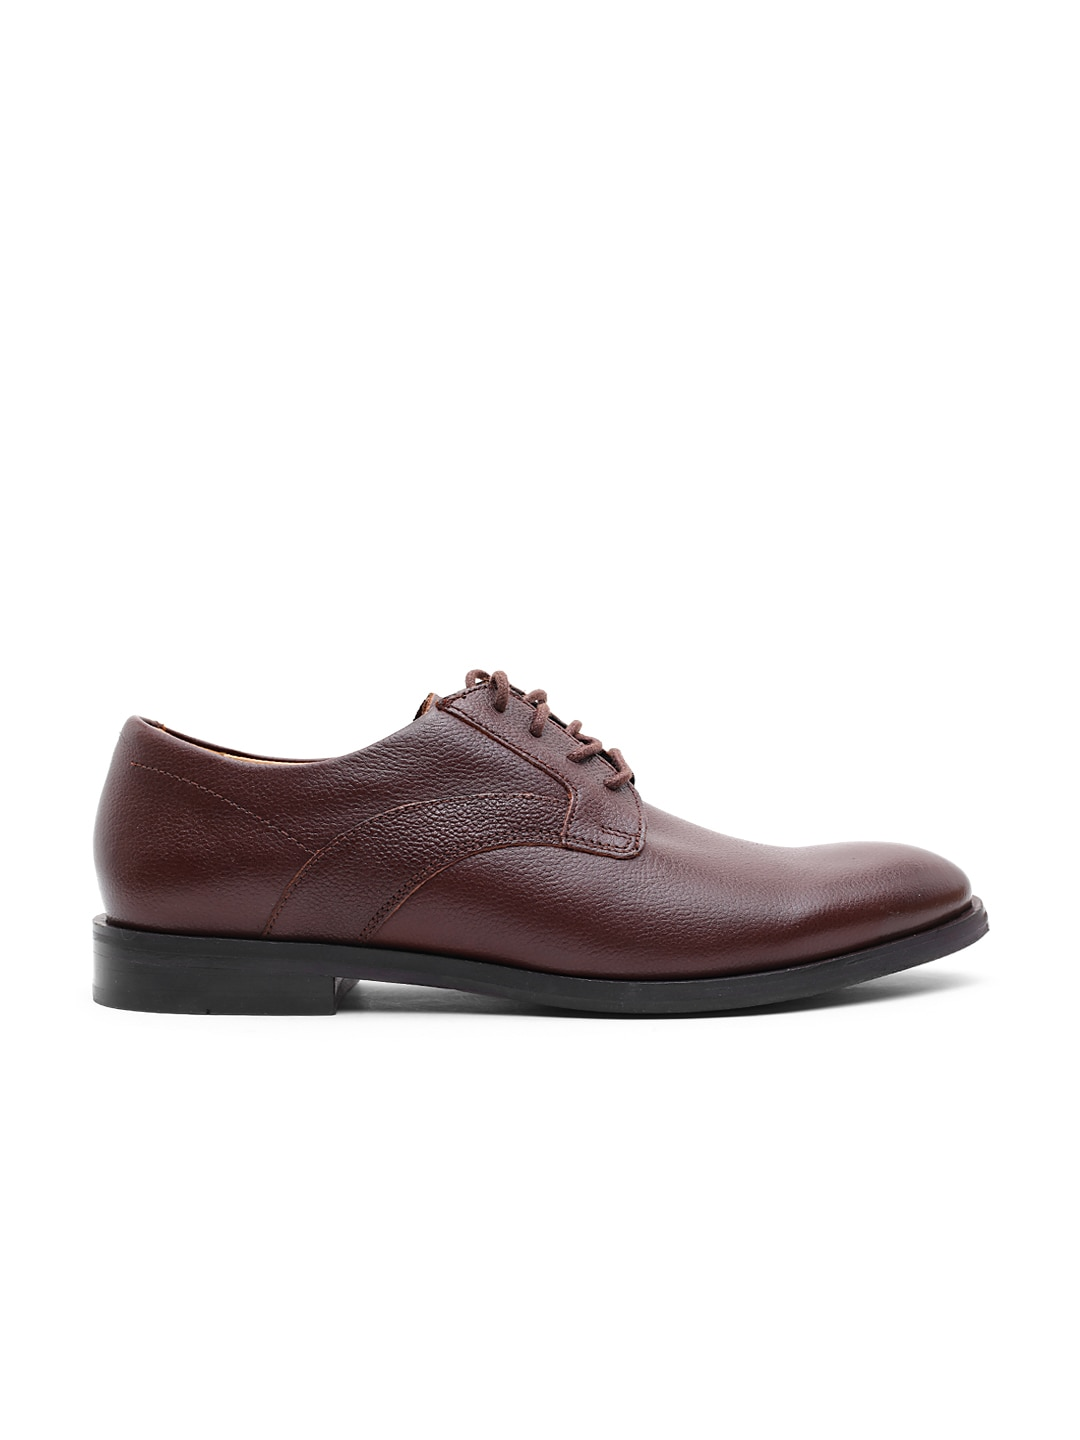 8e81b3e8df2297 Formal Shoes - Buy Formal Shoes online in India